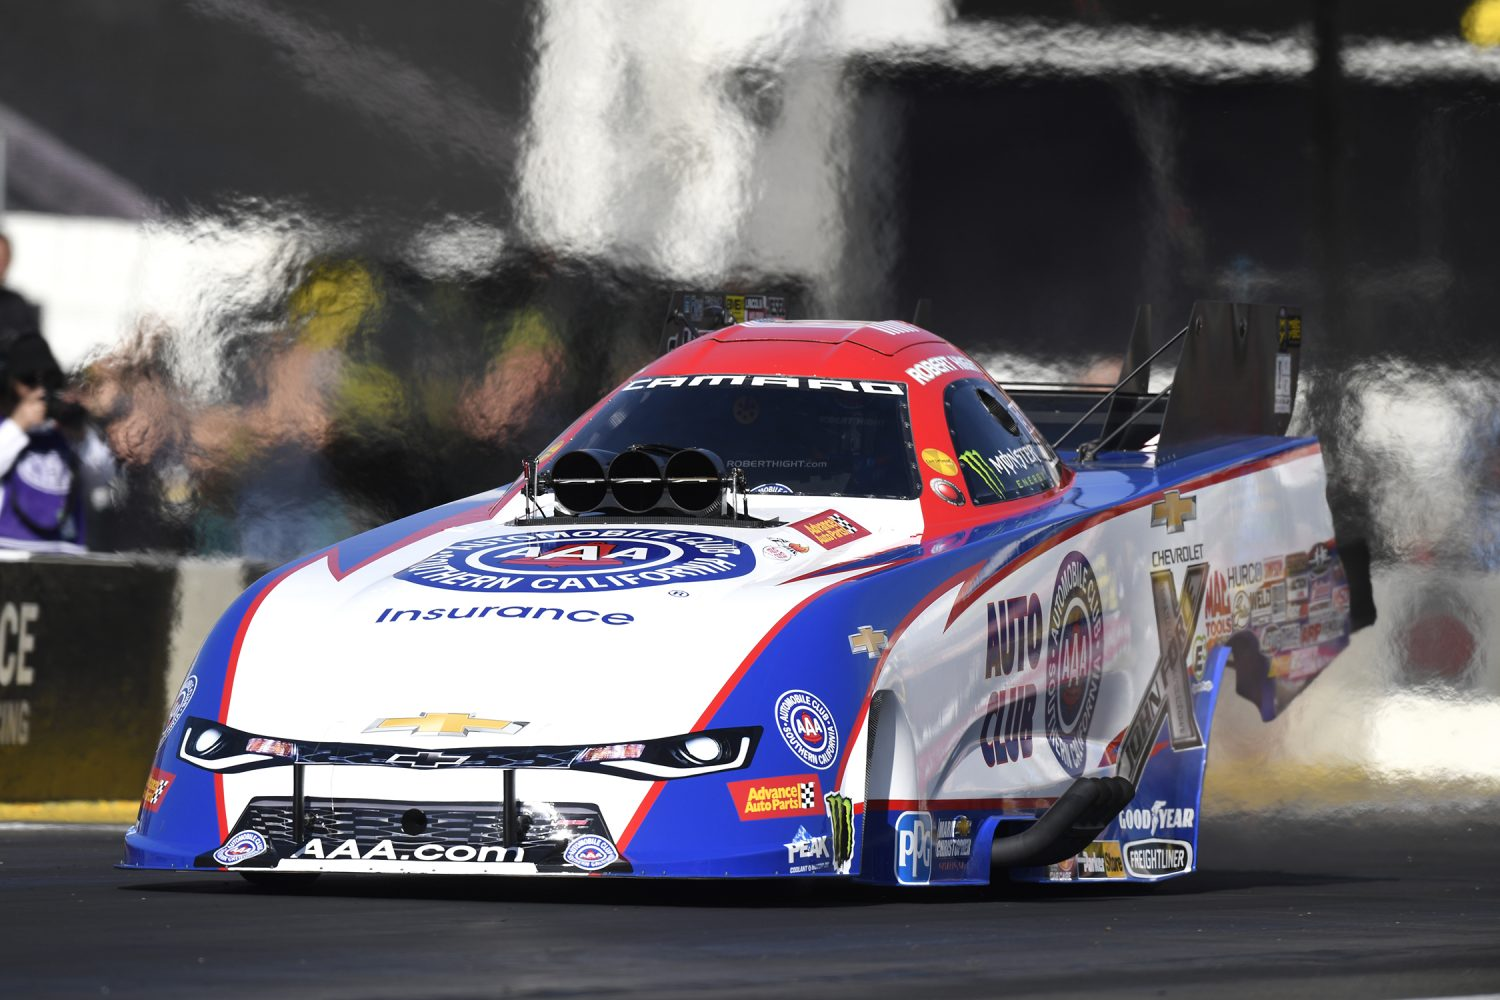 Baytown Texas The Nhra Mello Yello Drag Racing Series S To Royal Purple Raceway For 31st Annual Springnationals On April 20 22